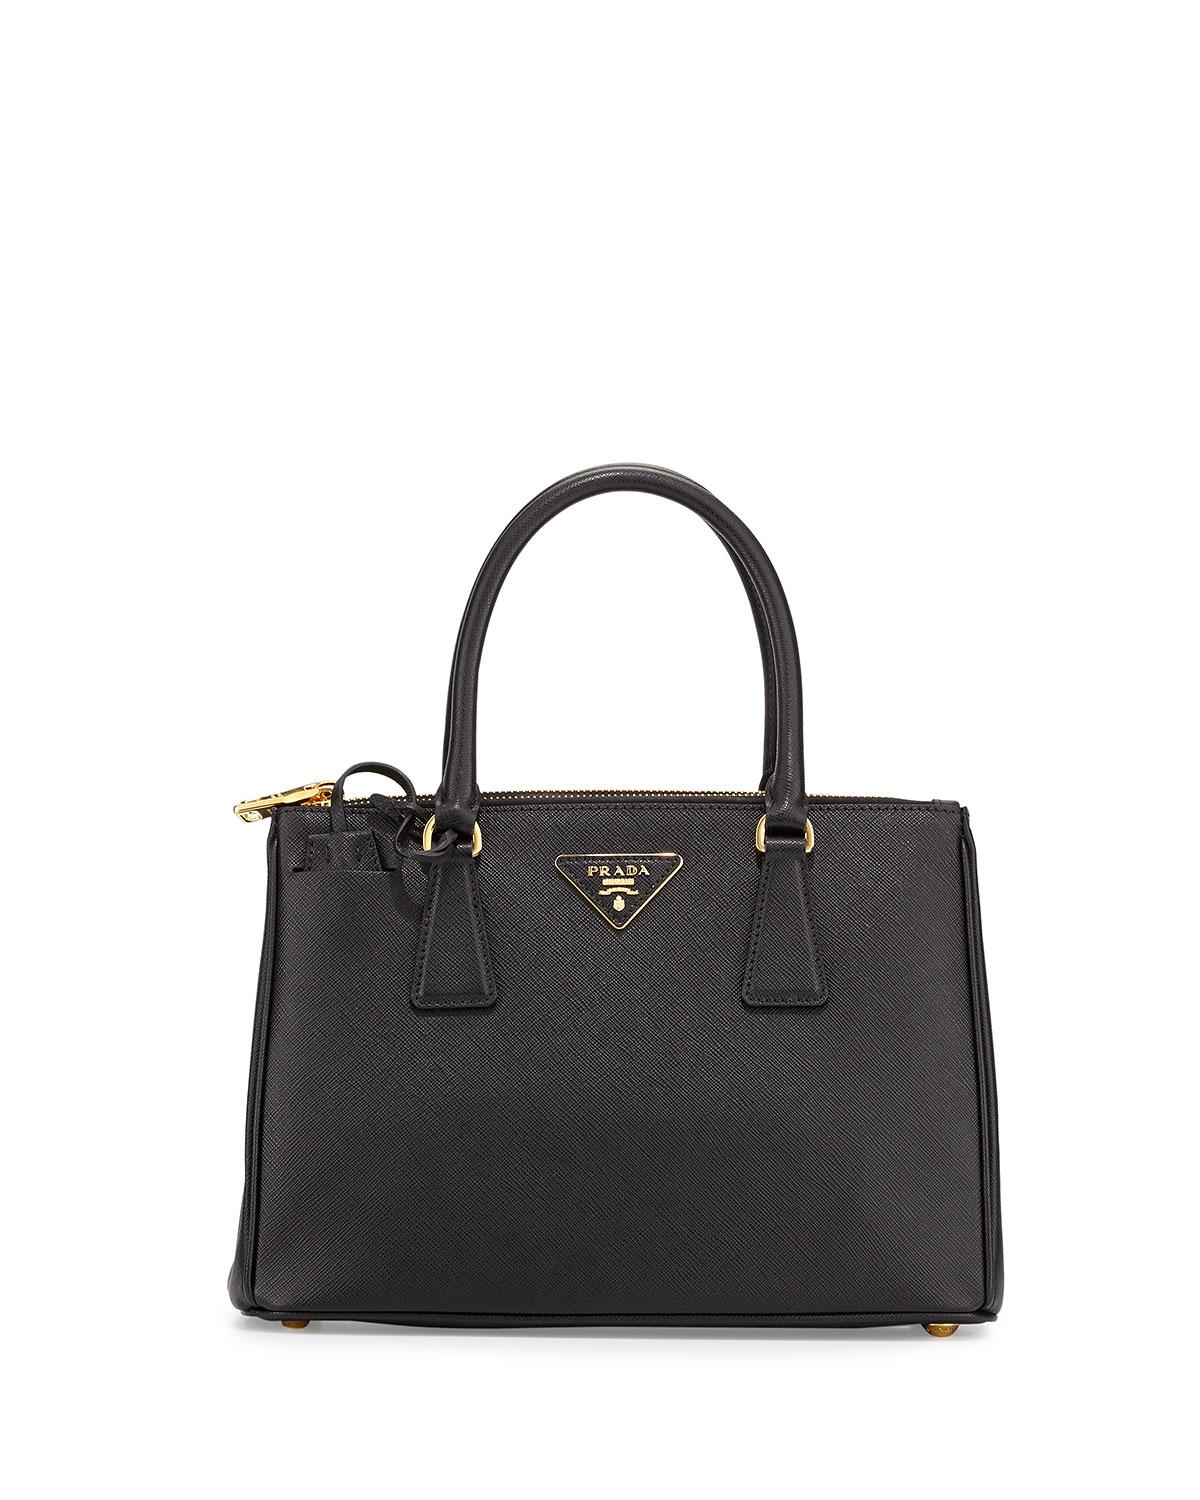 56f3f9251020 Prada Saffiano Small Executive Leather Tote Bag in Black - Lyst